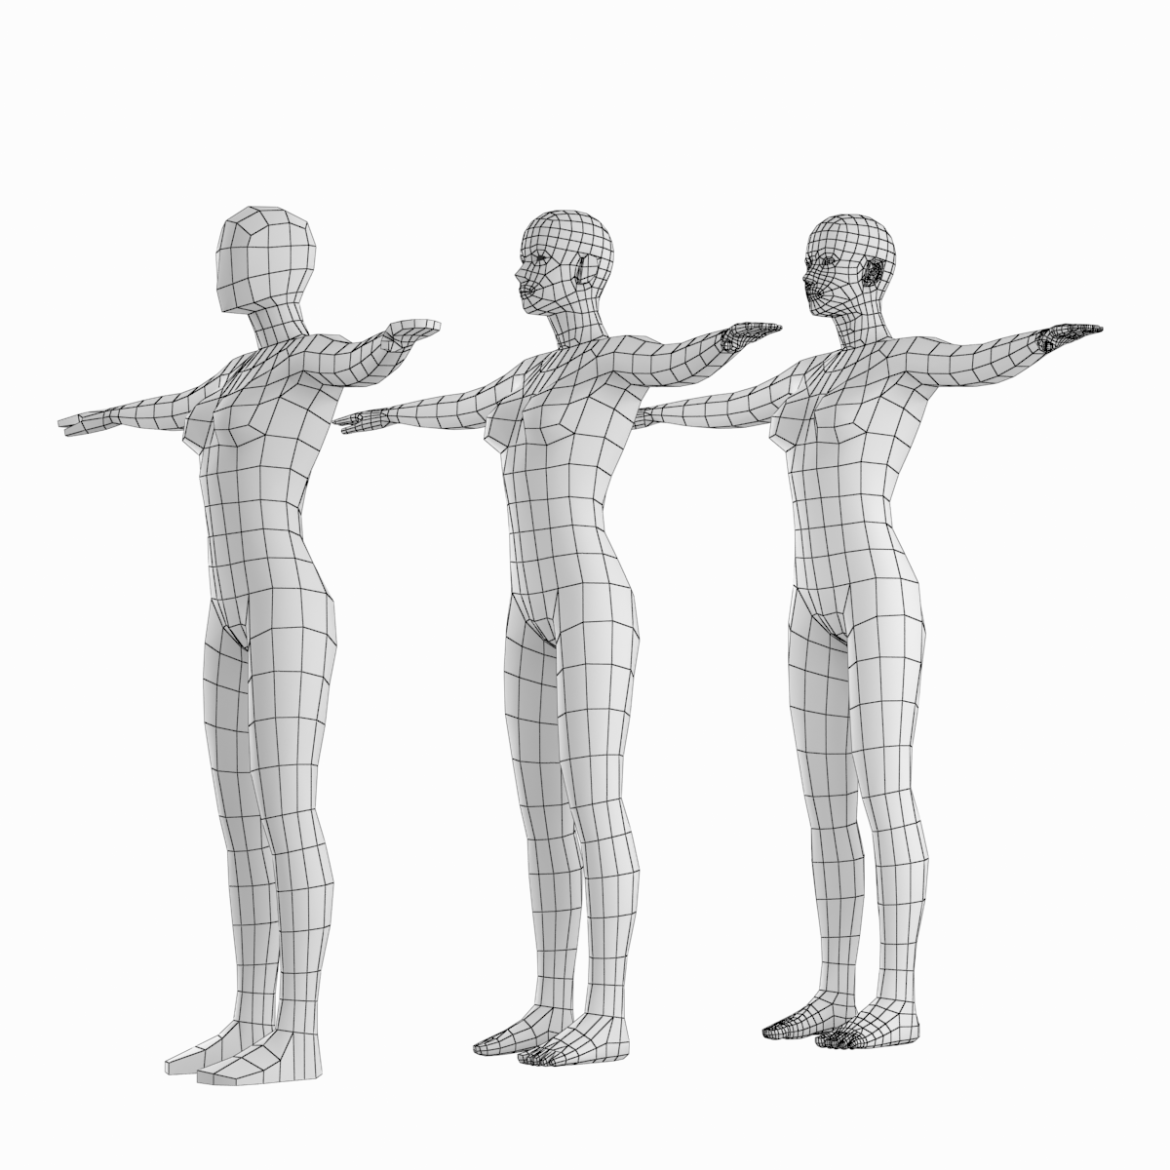 "Low-poly base mesh of human female body with accurate natural proportions in T-pose. Features: * The photos and 3D scan of real woman were used to create the model. * The body proportions are equal to measured natural human proportions adopted in art and design. * The model was designed to be a universal ""stem… <a class=""continue"" href=""https://www.flatpyramid.com/3d-models/characters-3d-models/human-types/female/female-base-mesh-natural-proportions-in-t-pose/"">Continue Reading<span> Female Base Mesh Natural Proportions in T-Pose</span></a> <a class=""continue"" href=""https://www.flatpyramid.com/3d-models/characters-3d-models/human-types/female/female-base-mesh-natural-proportions-in-t-pose/"">Continue Reading<span> Female Base Mesh Natural Proportions in T-Pose</span></a>"